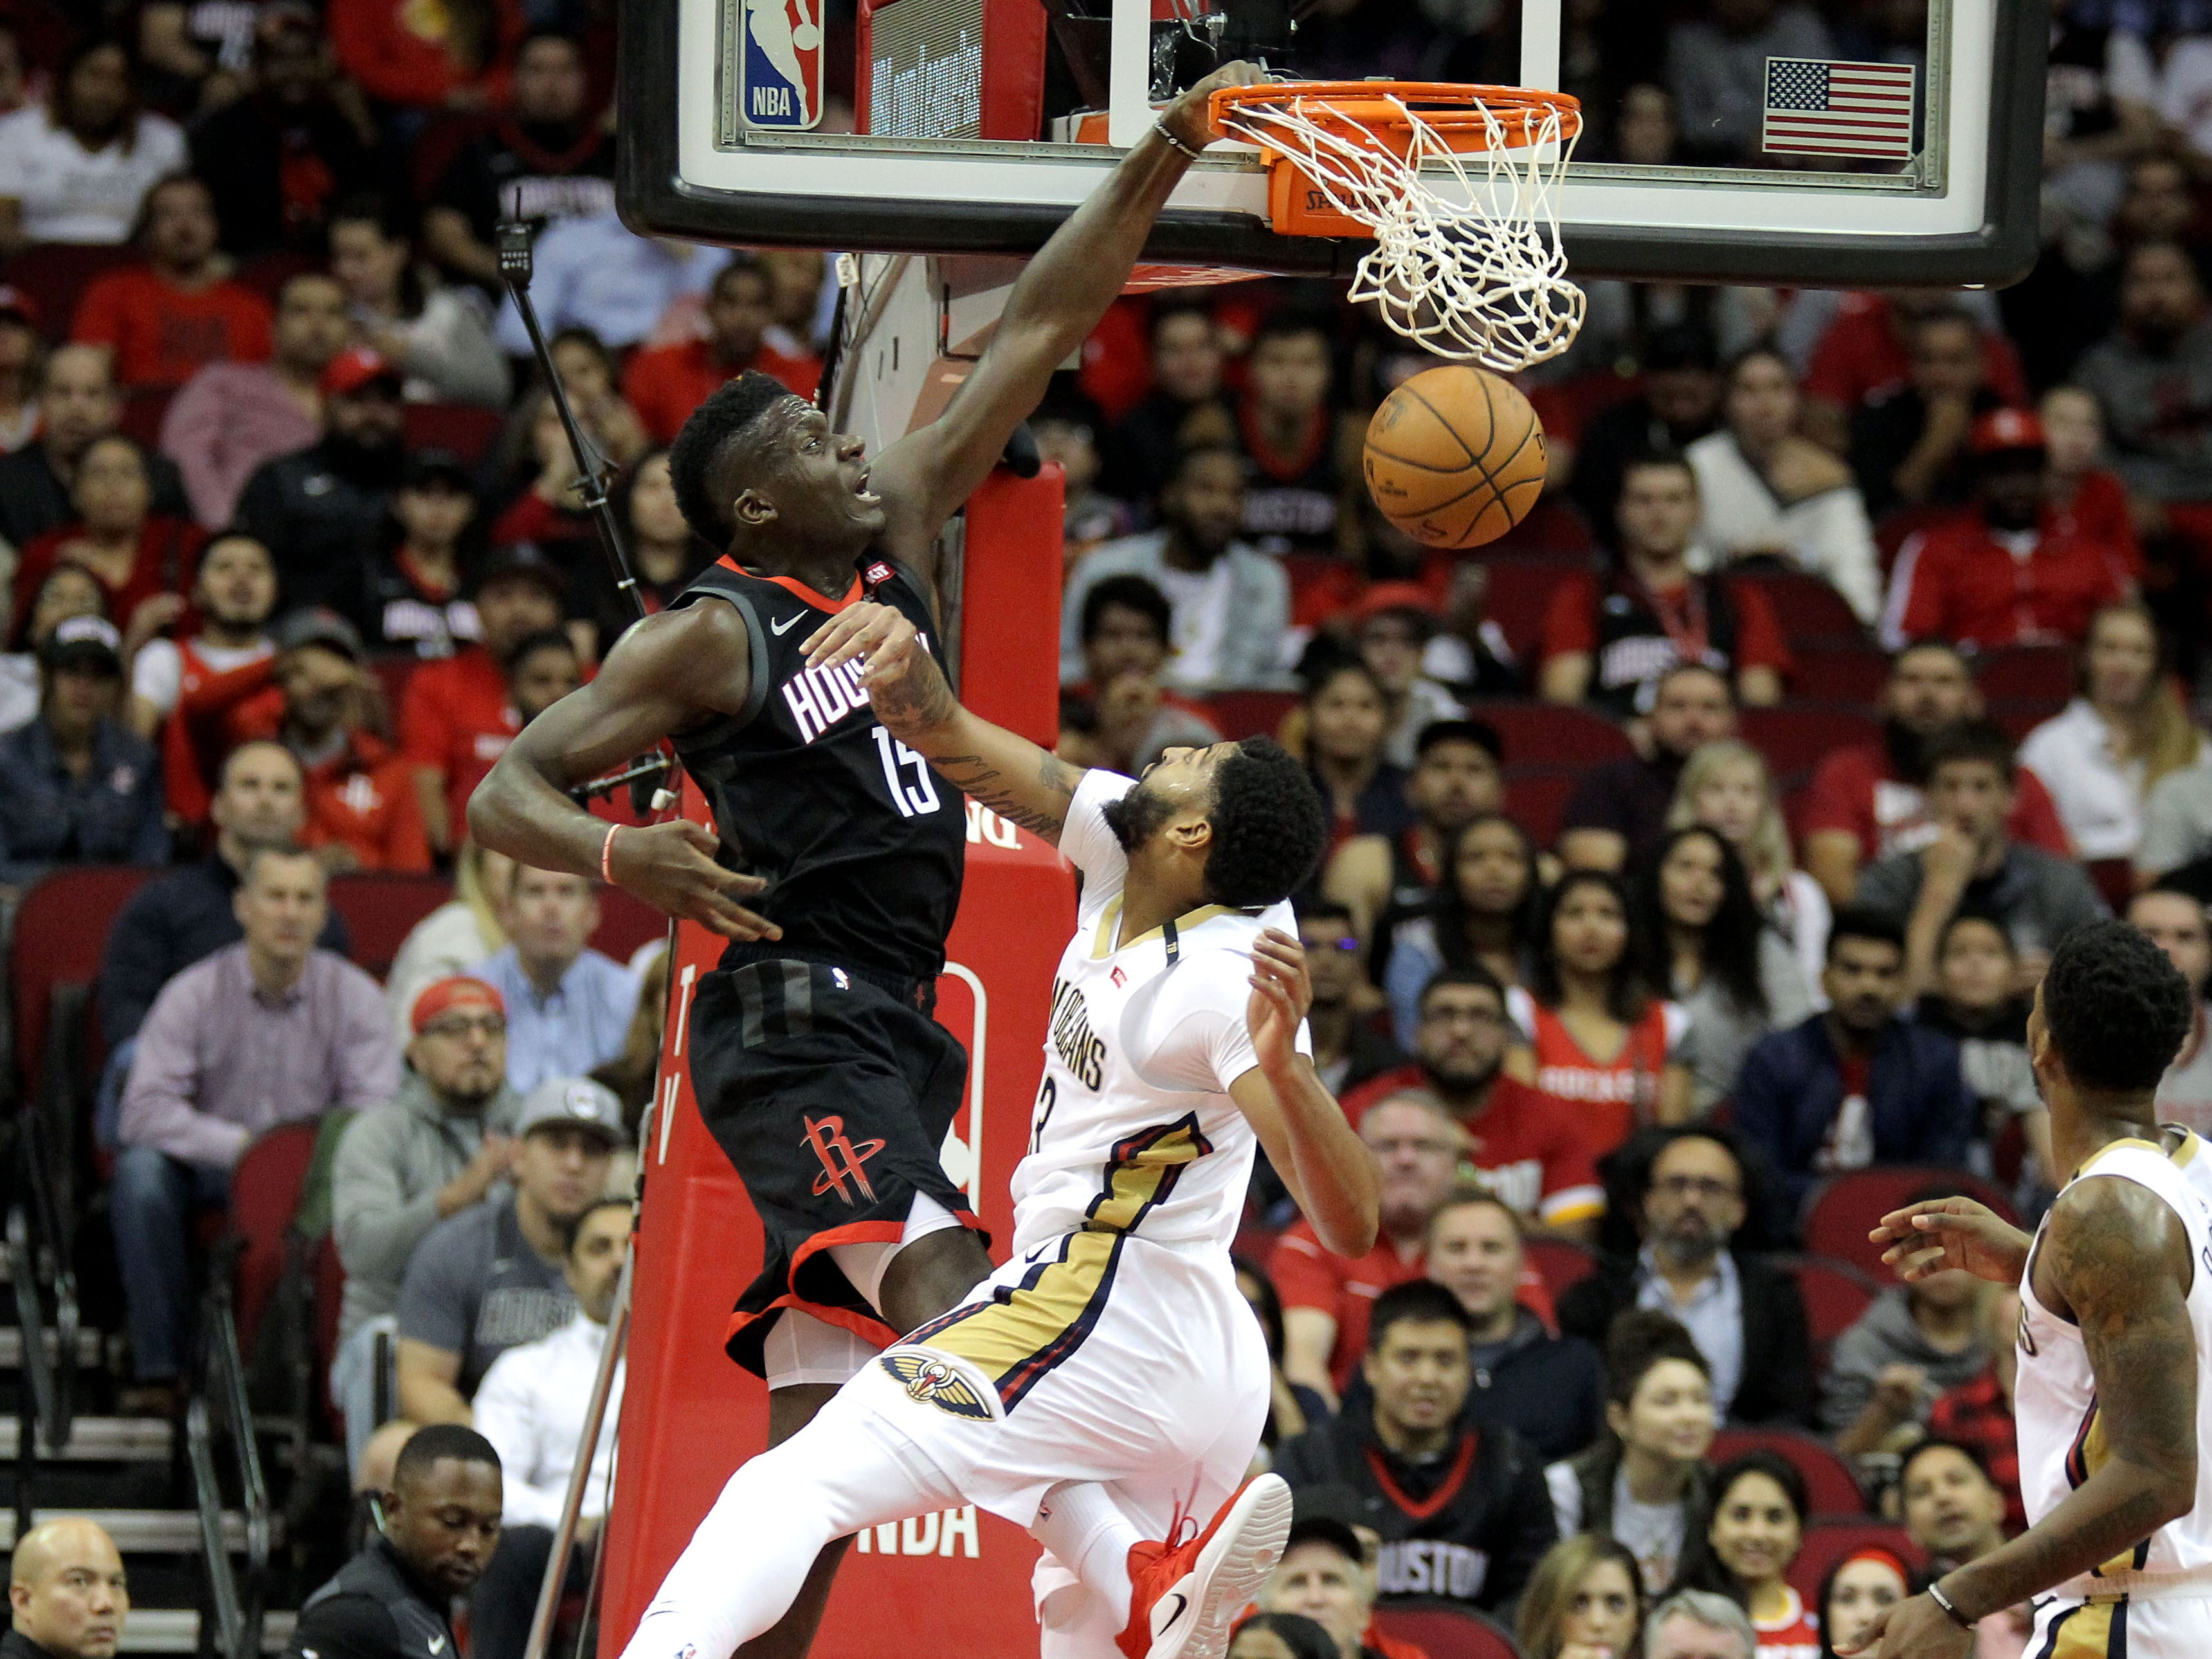 Oct. 17: Houston Rockets center Clint Capela makes a dunk while New Orleans Pelicans forward/center Anthony Davis defends during the first quarter at Toyota Center.